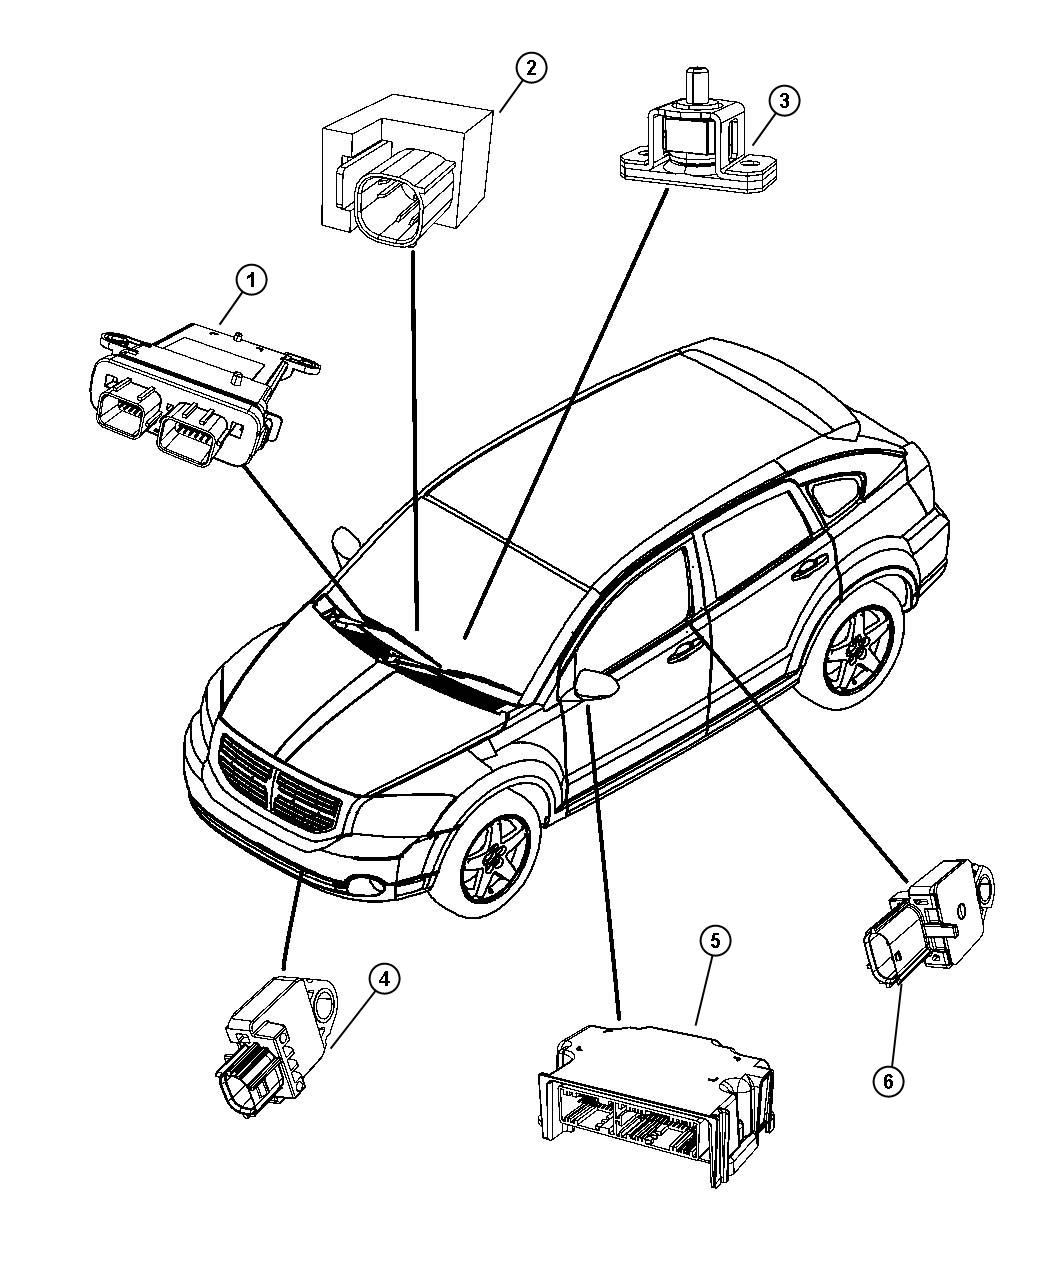 2007 dodge caliber engine mounts diagram